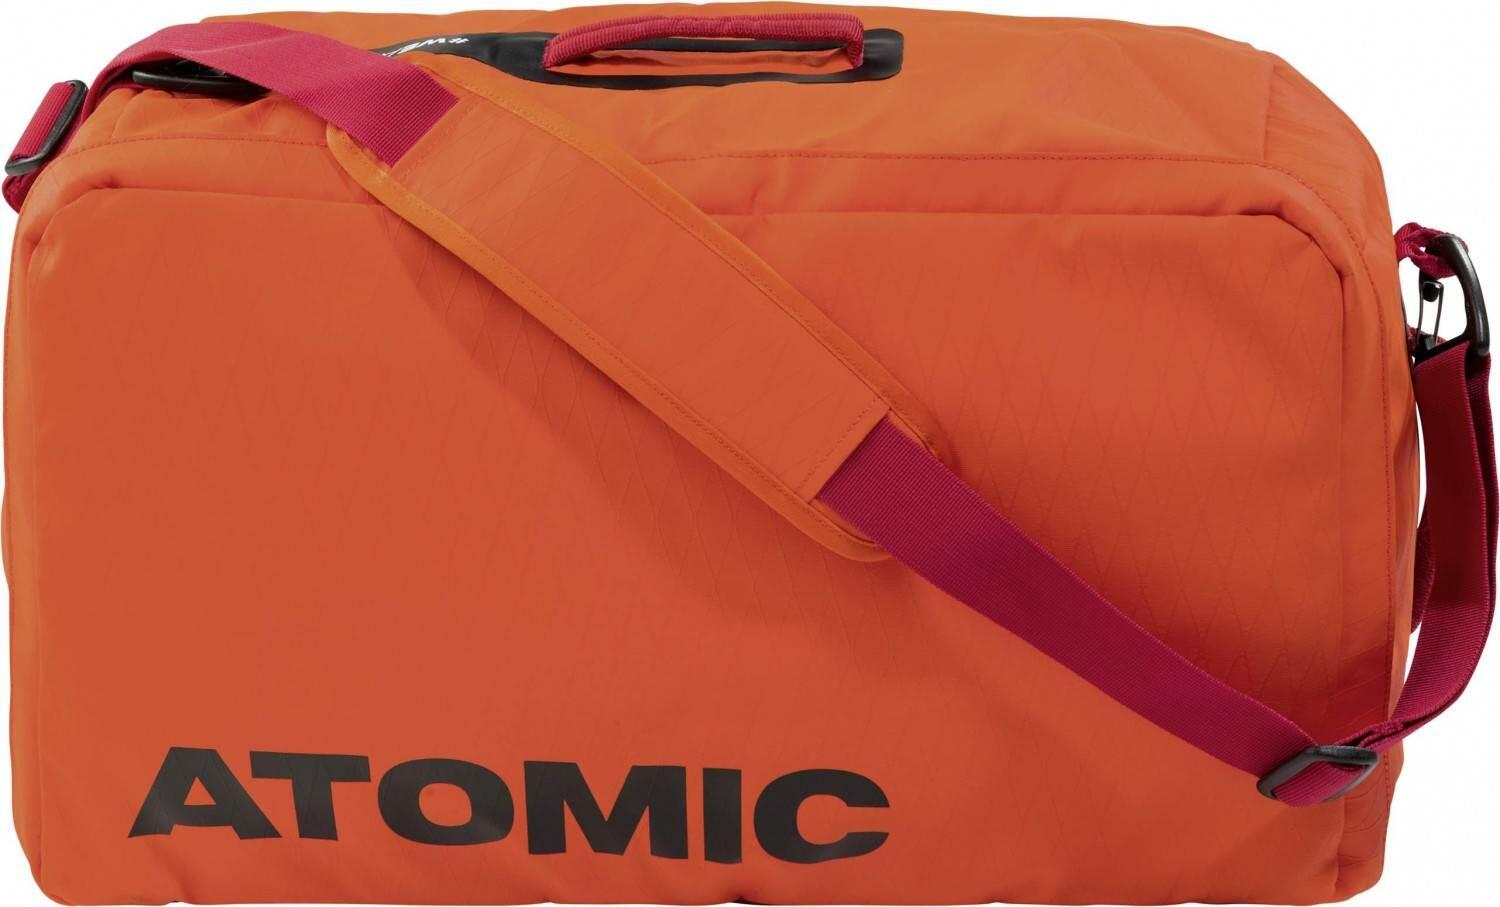 atomic-duffle-bag-40-tasche-farbe-bright-red-